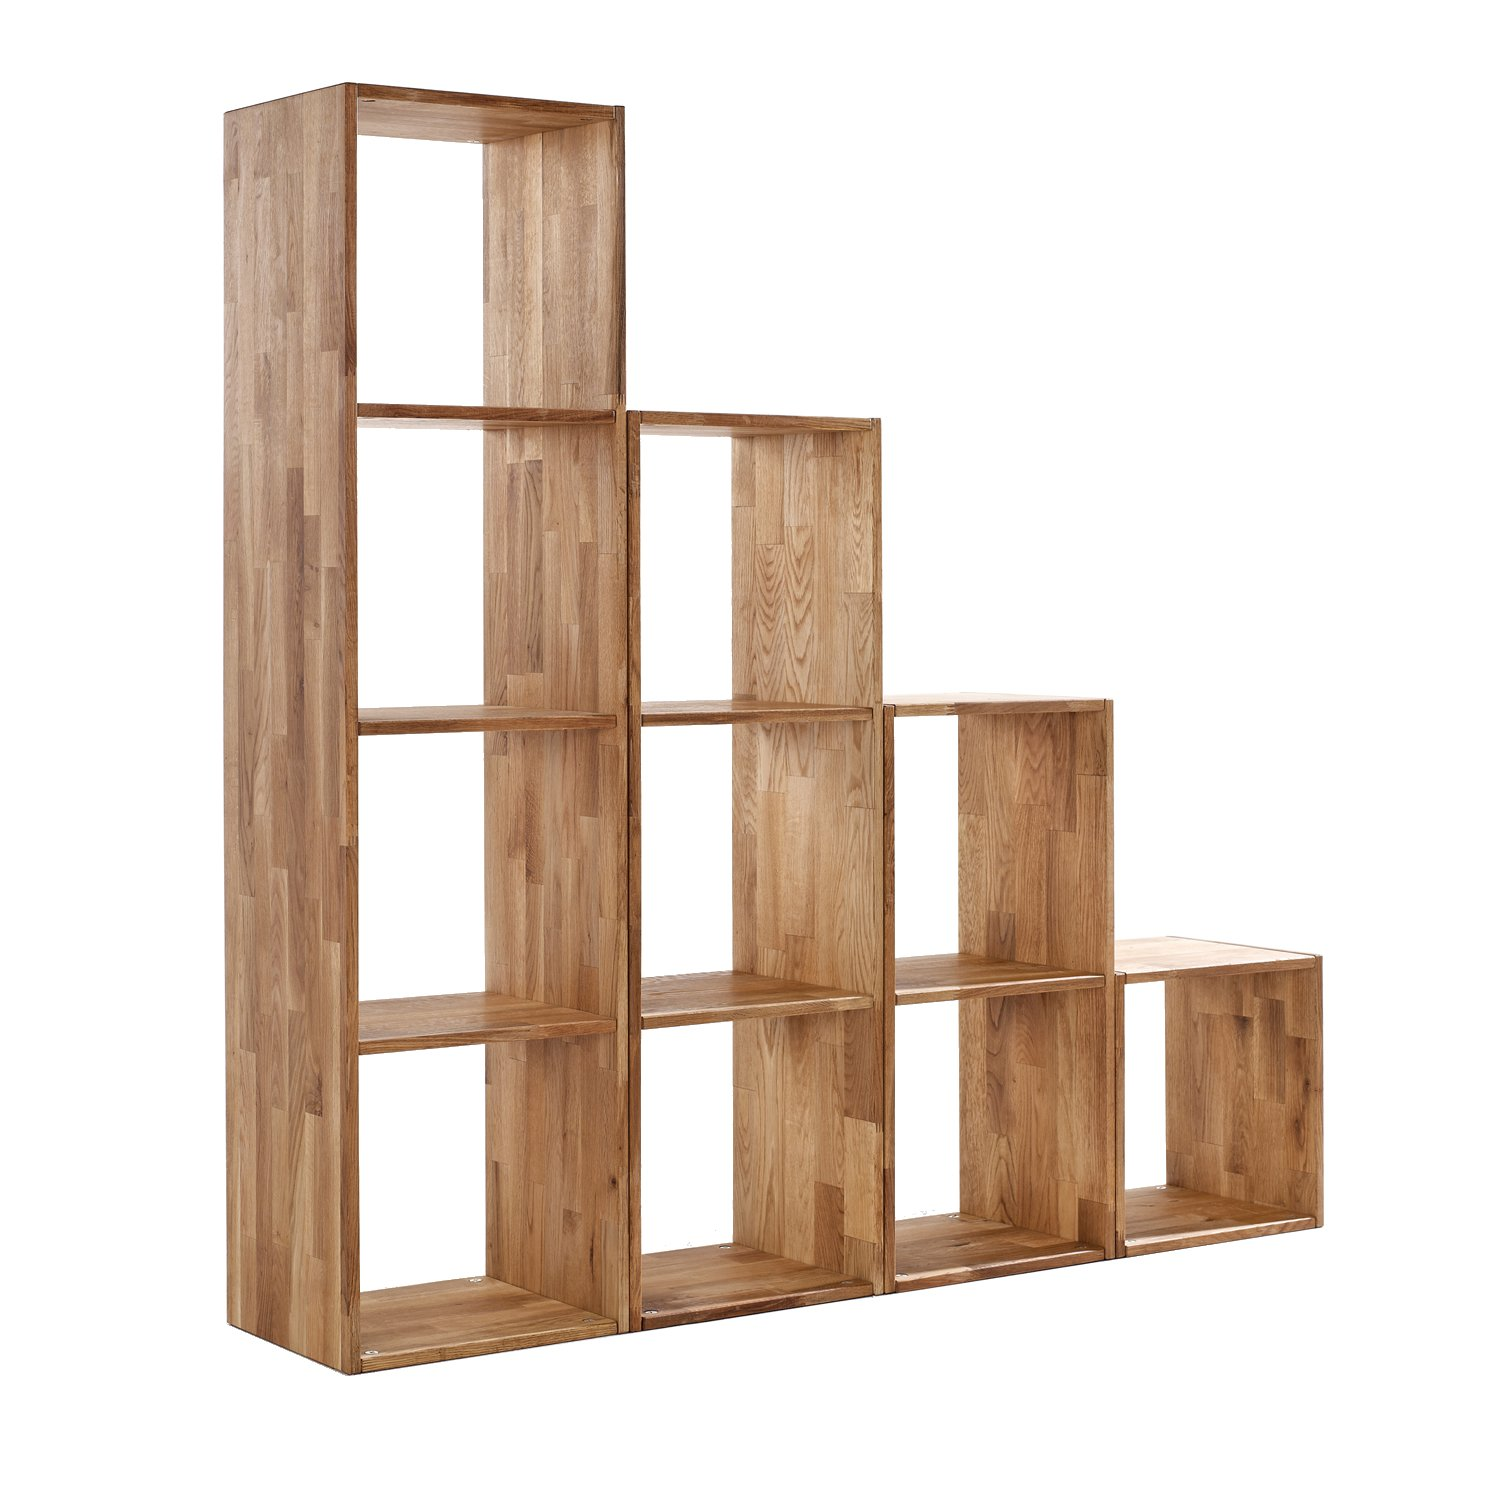 Elegant WorldStores Maximo Oak Single Cube   Oak Storage Cube   Single Storage Unit    Innovative Home Storage: Amazon.co.uk: Kitchen U0026 Home